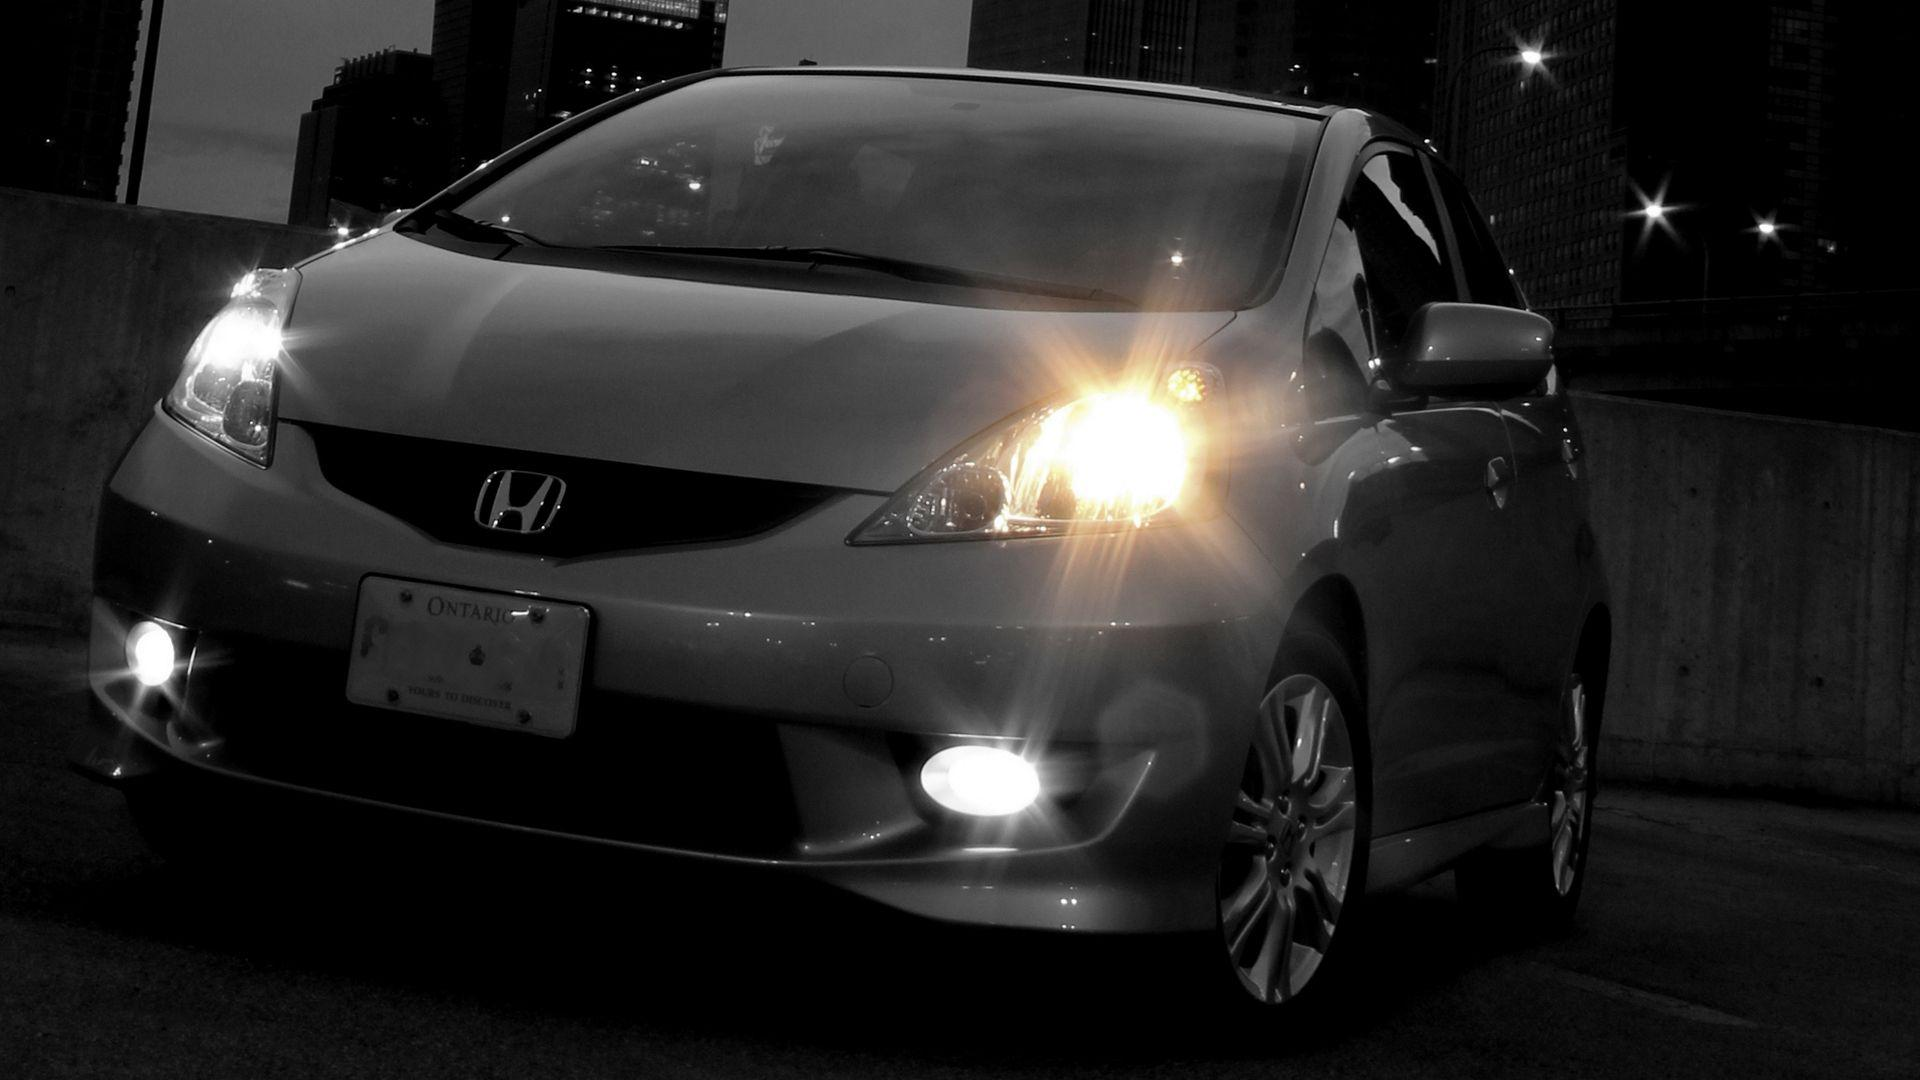 Honda Fit Wallpapers HD